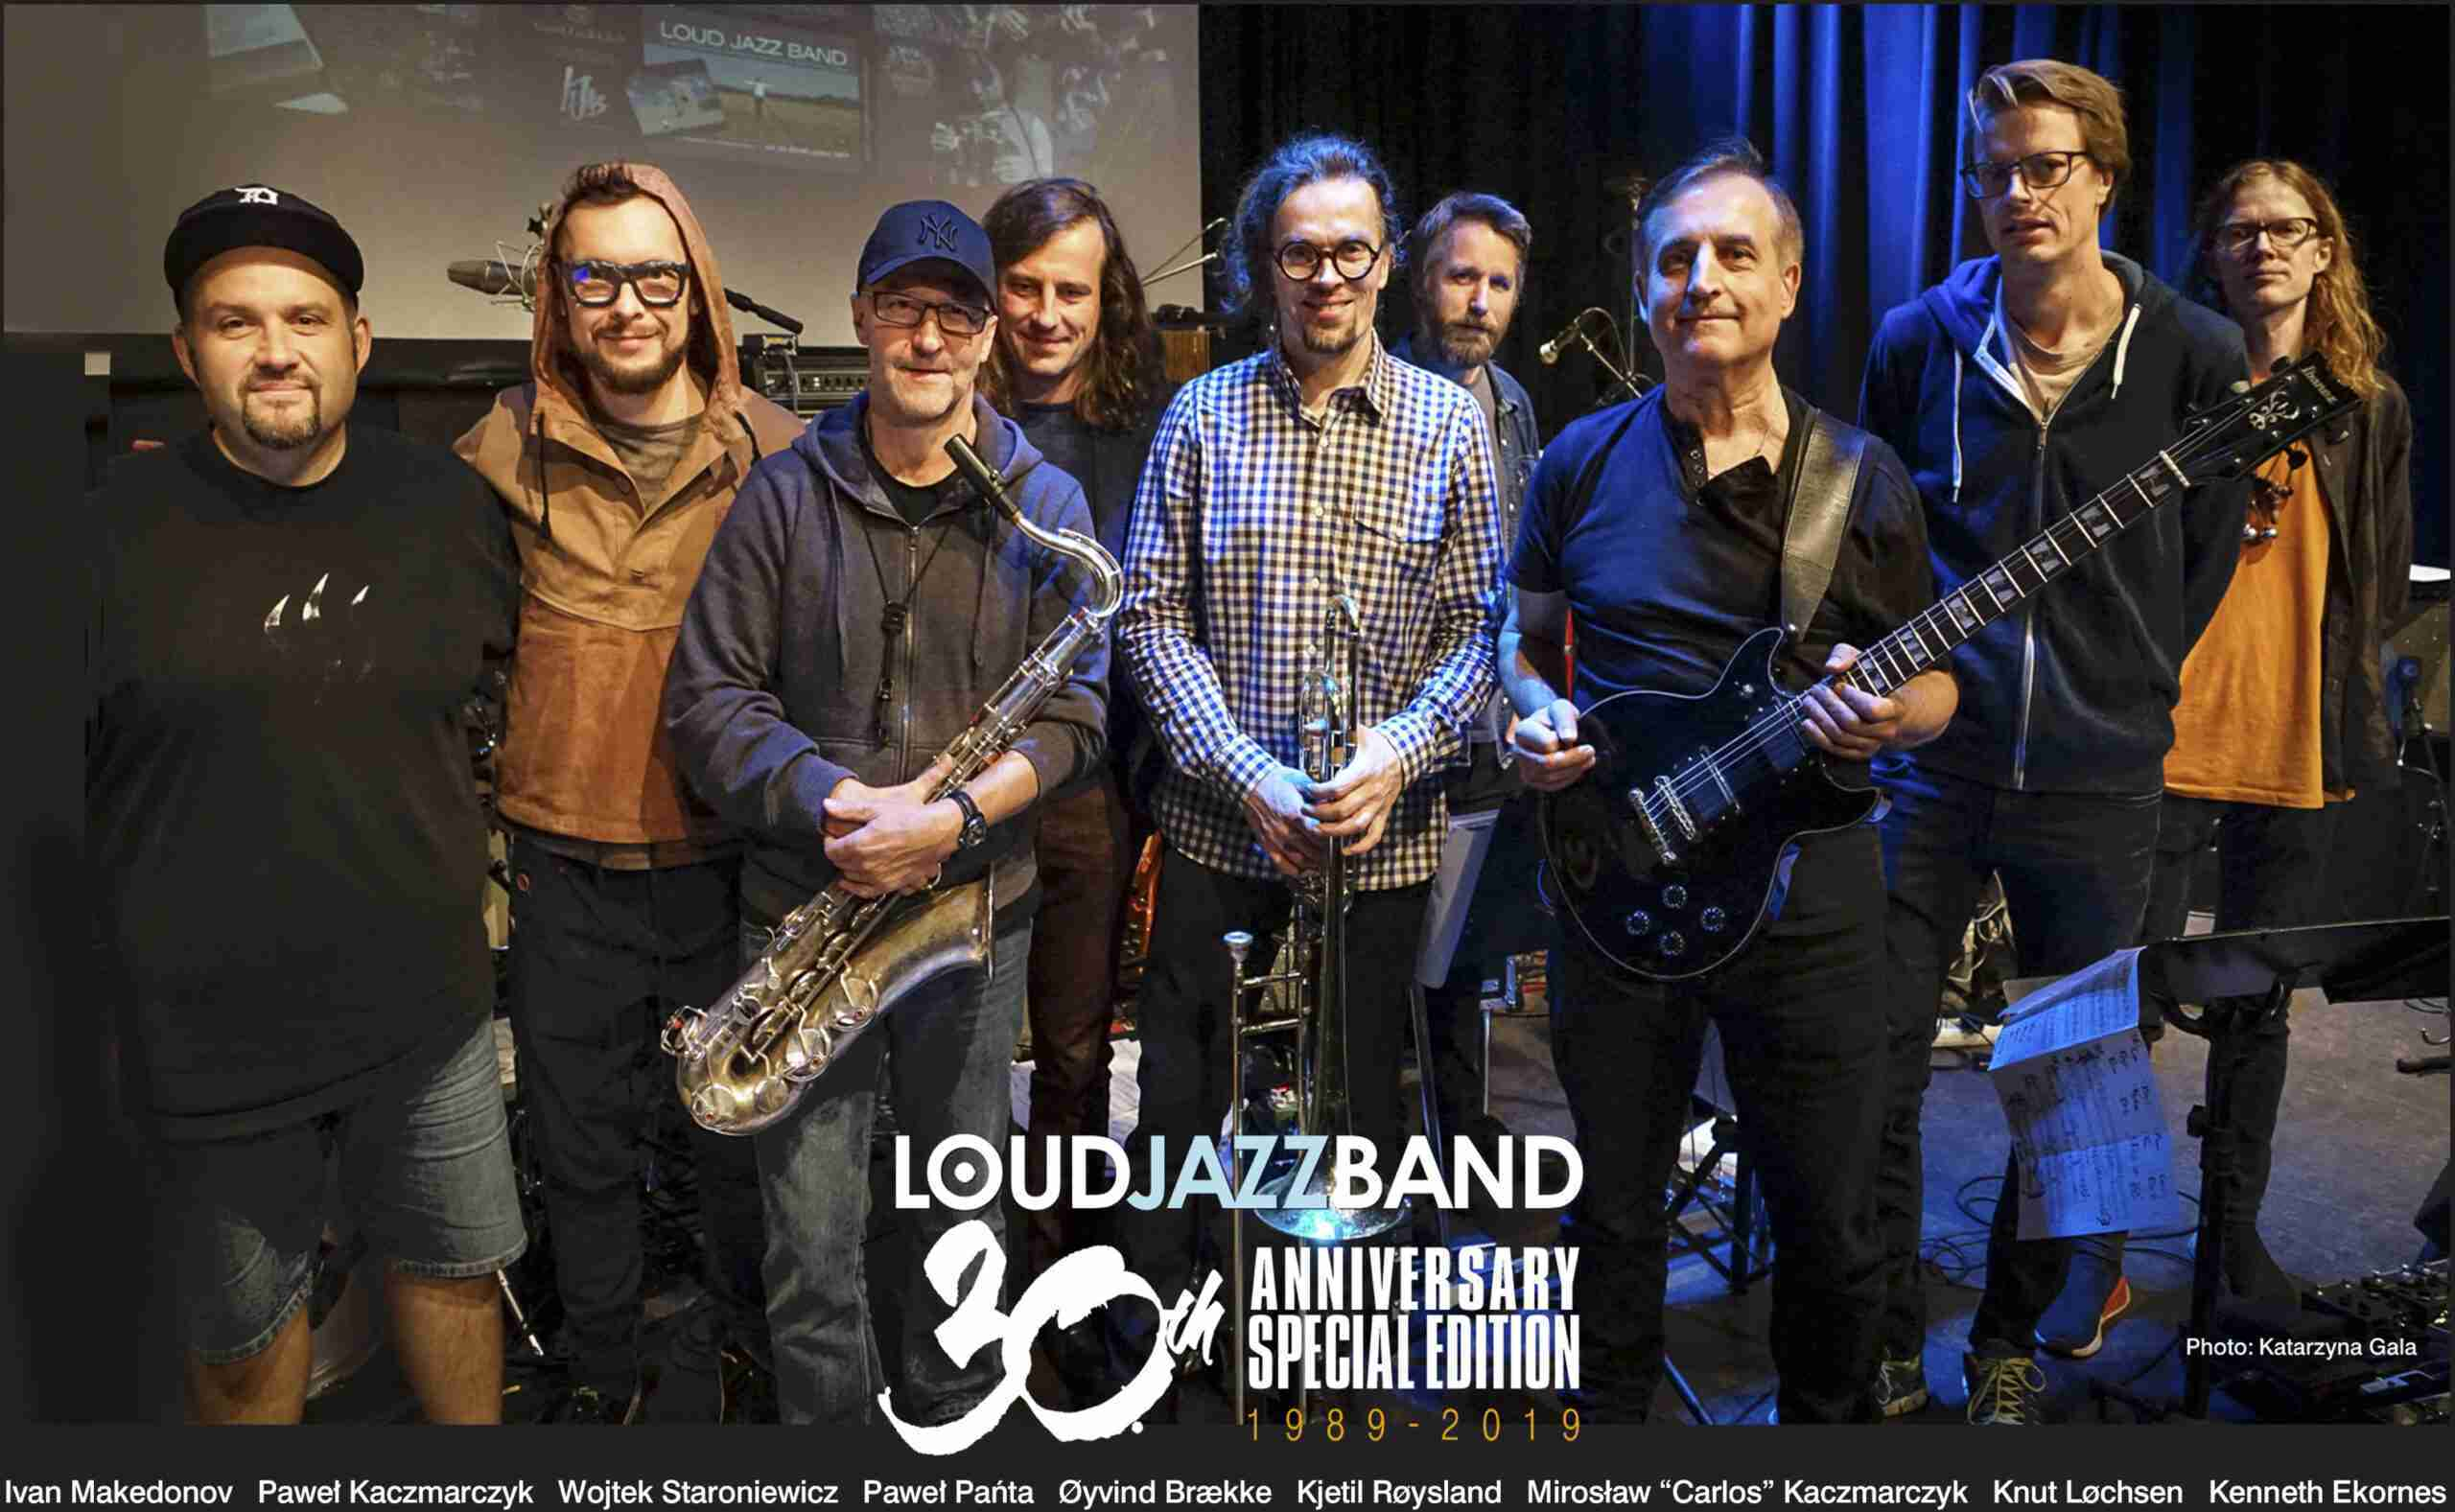 Loud Jazz Band 30th Anniversary Special Edition